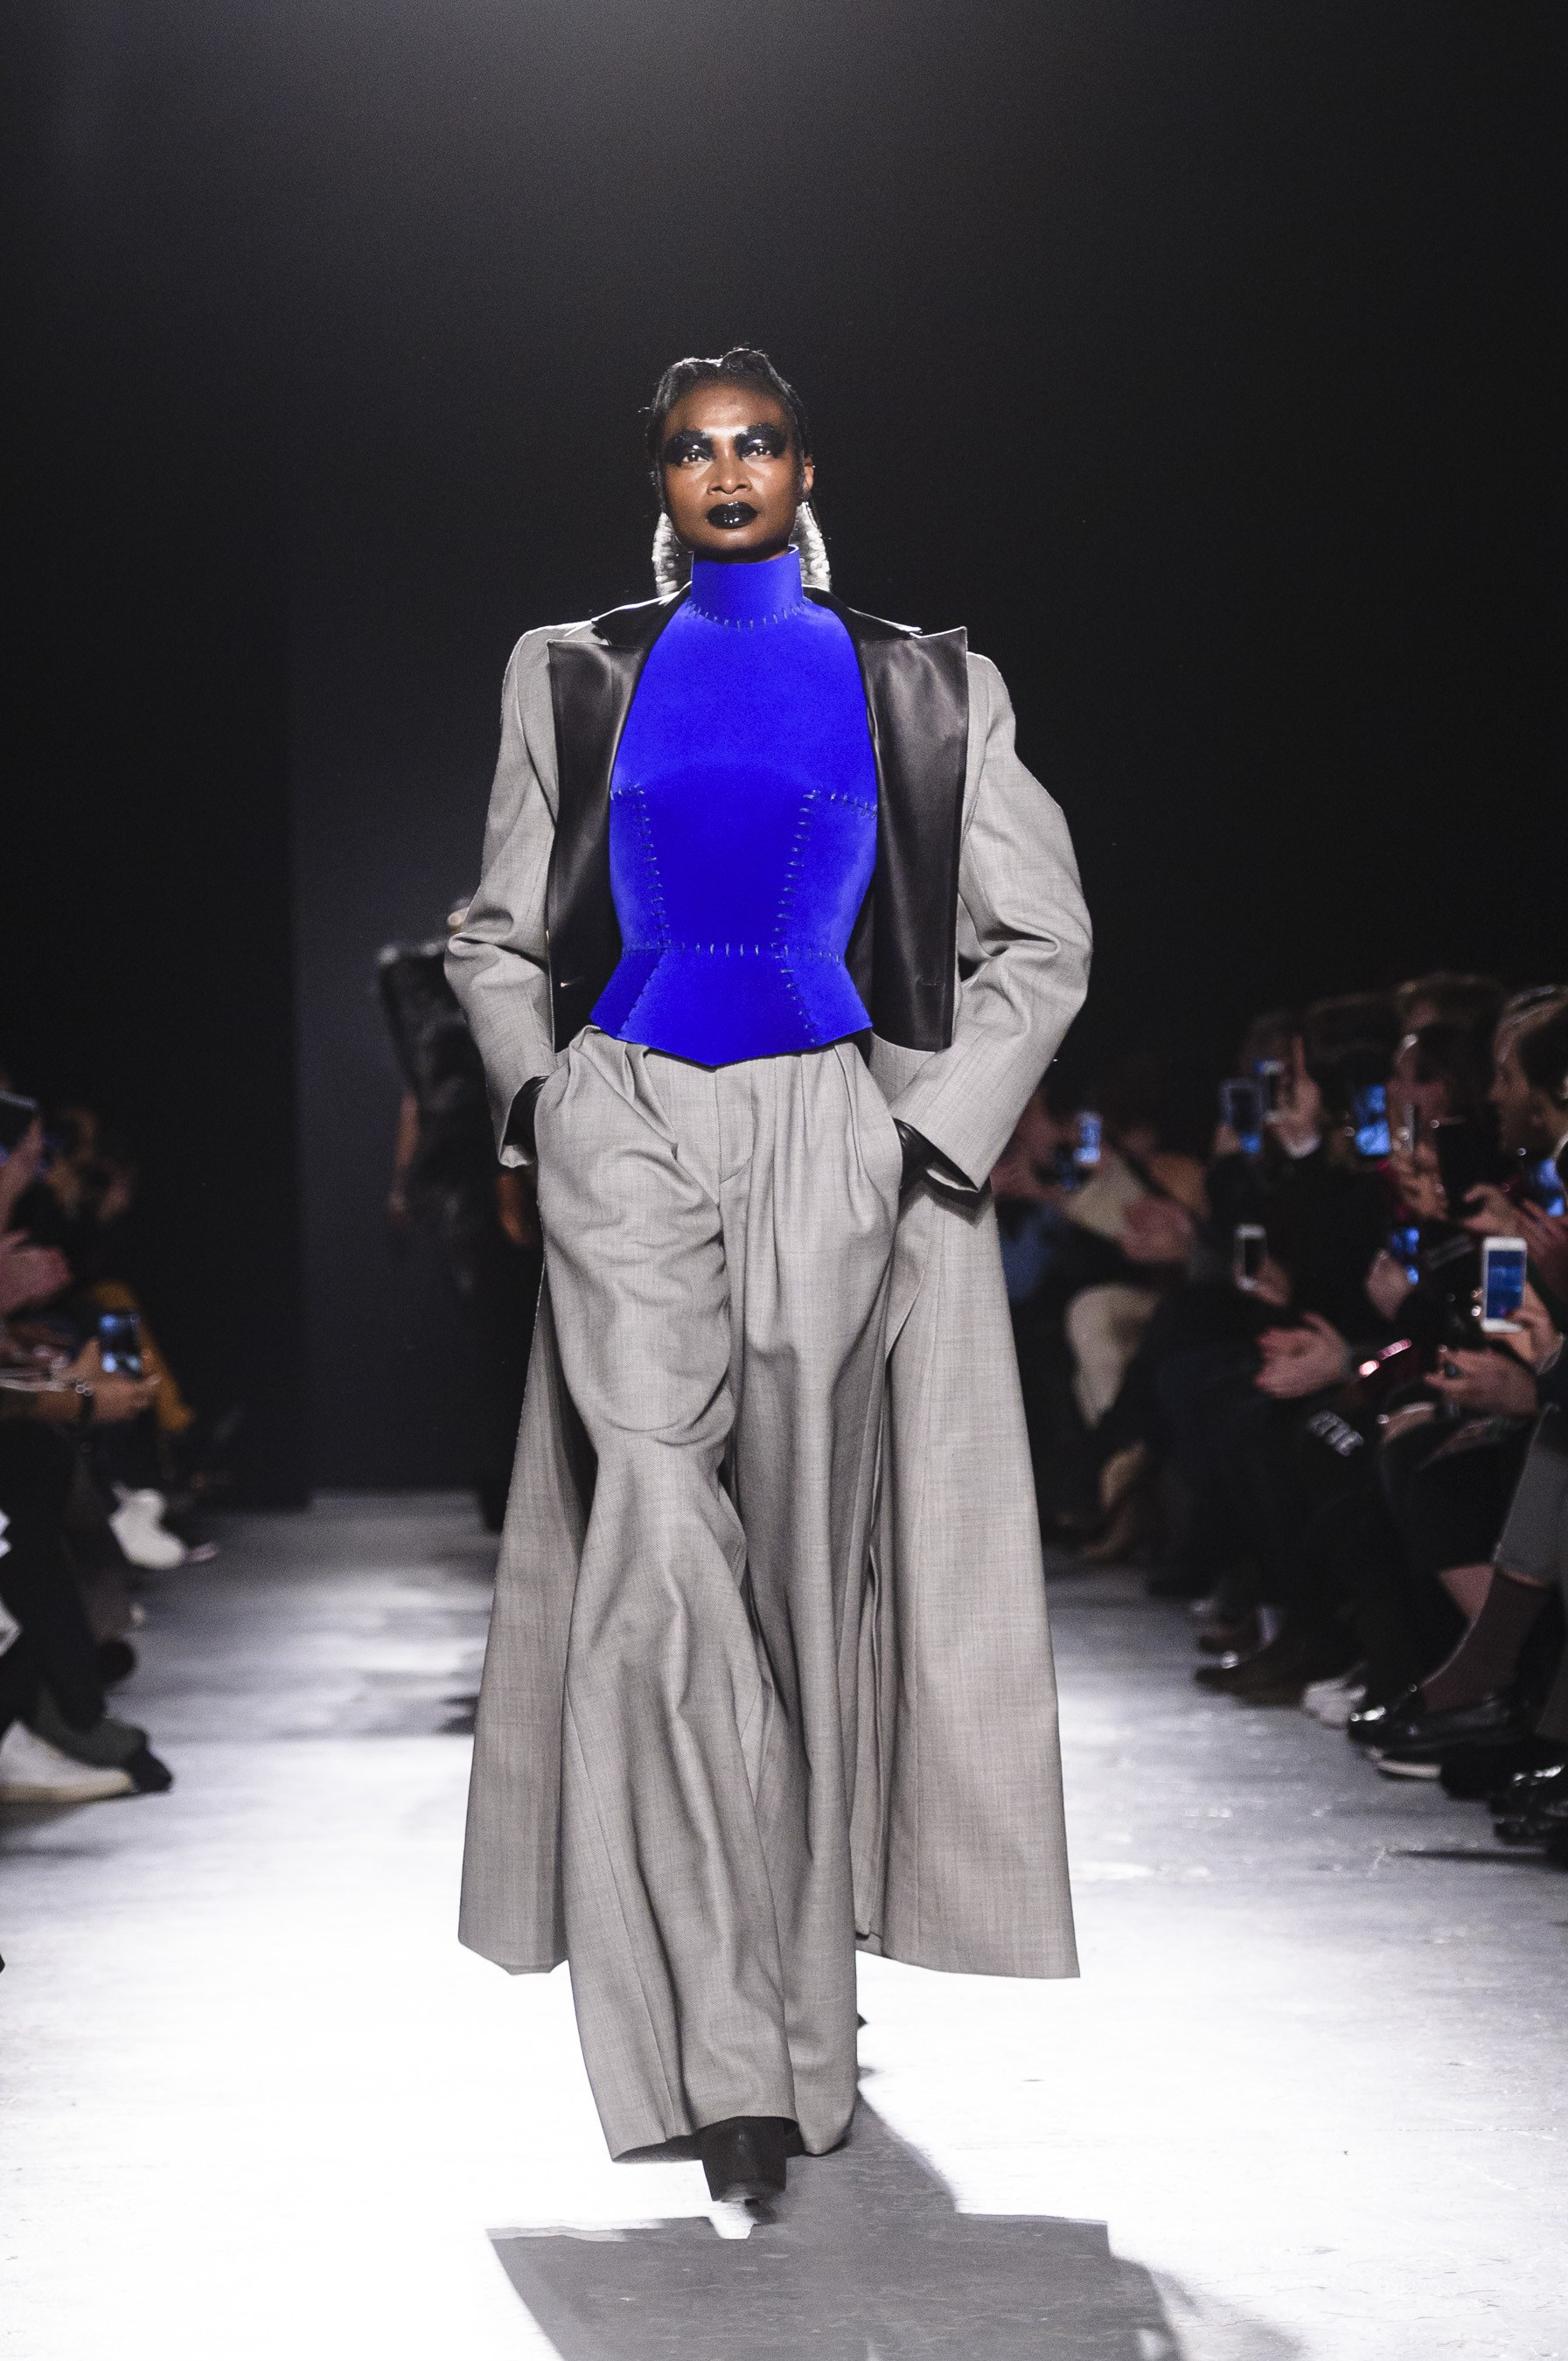 Synced - The Trend Fall 2018